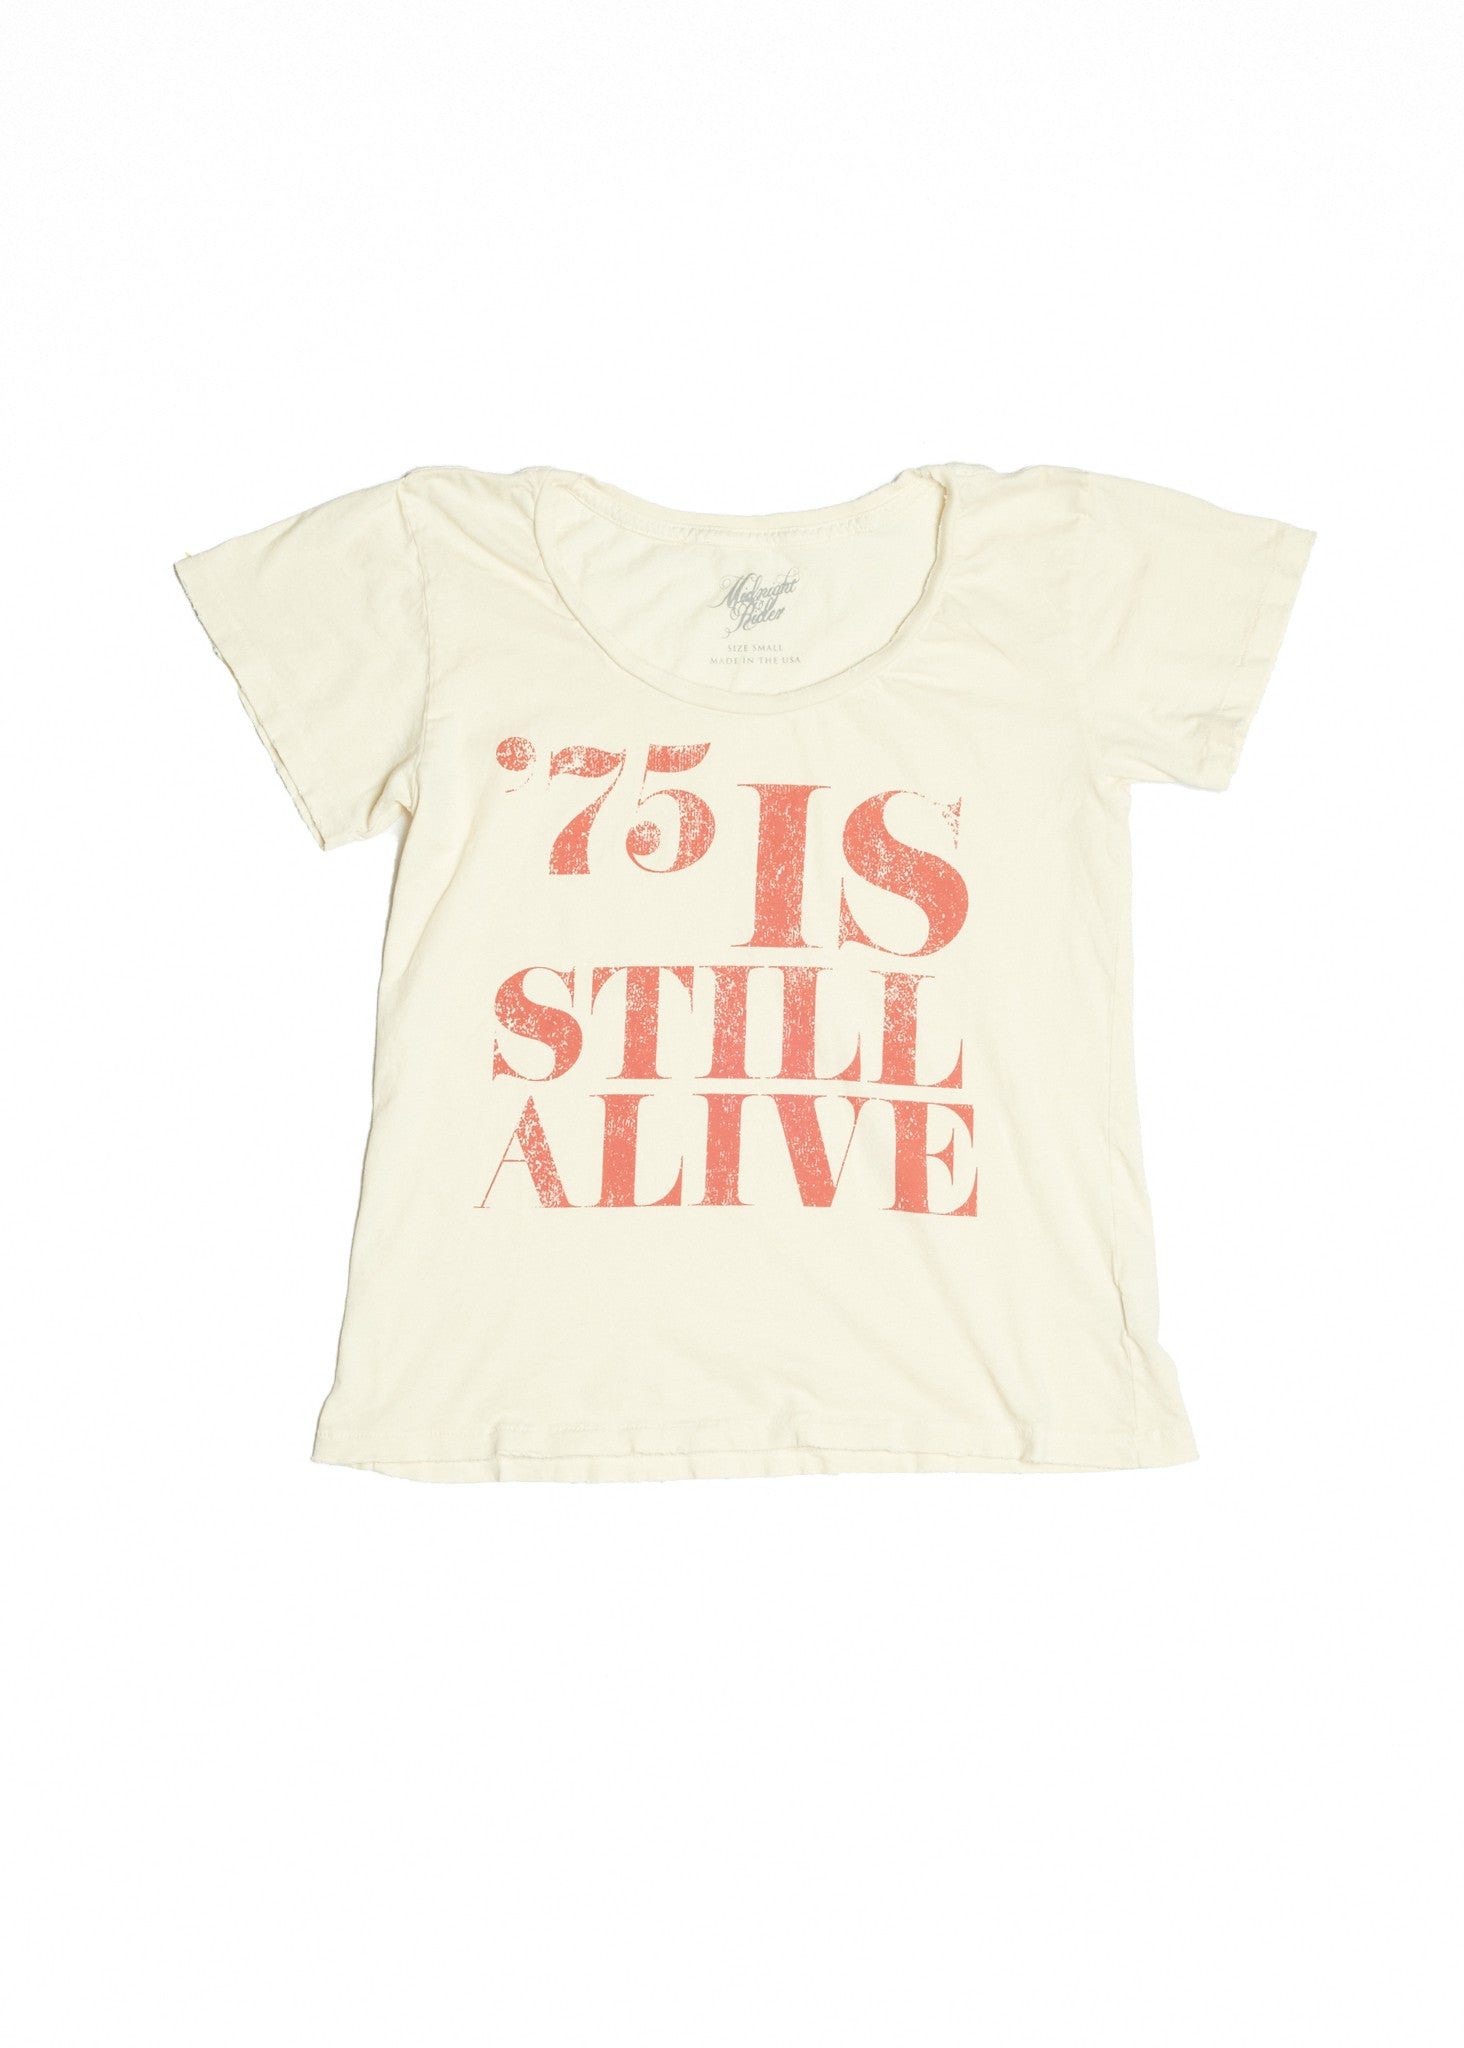 75 is Still Alive Women's Crew - Dirty White - Women's Tee Shirt - Midnight Rider